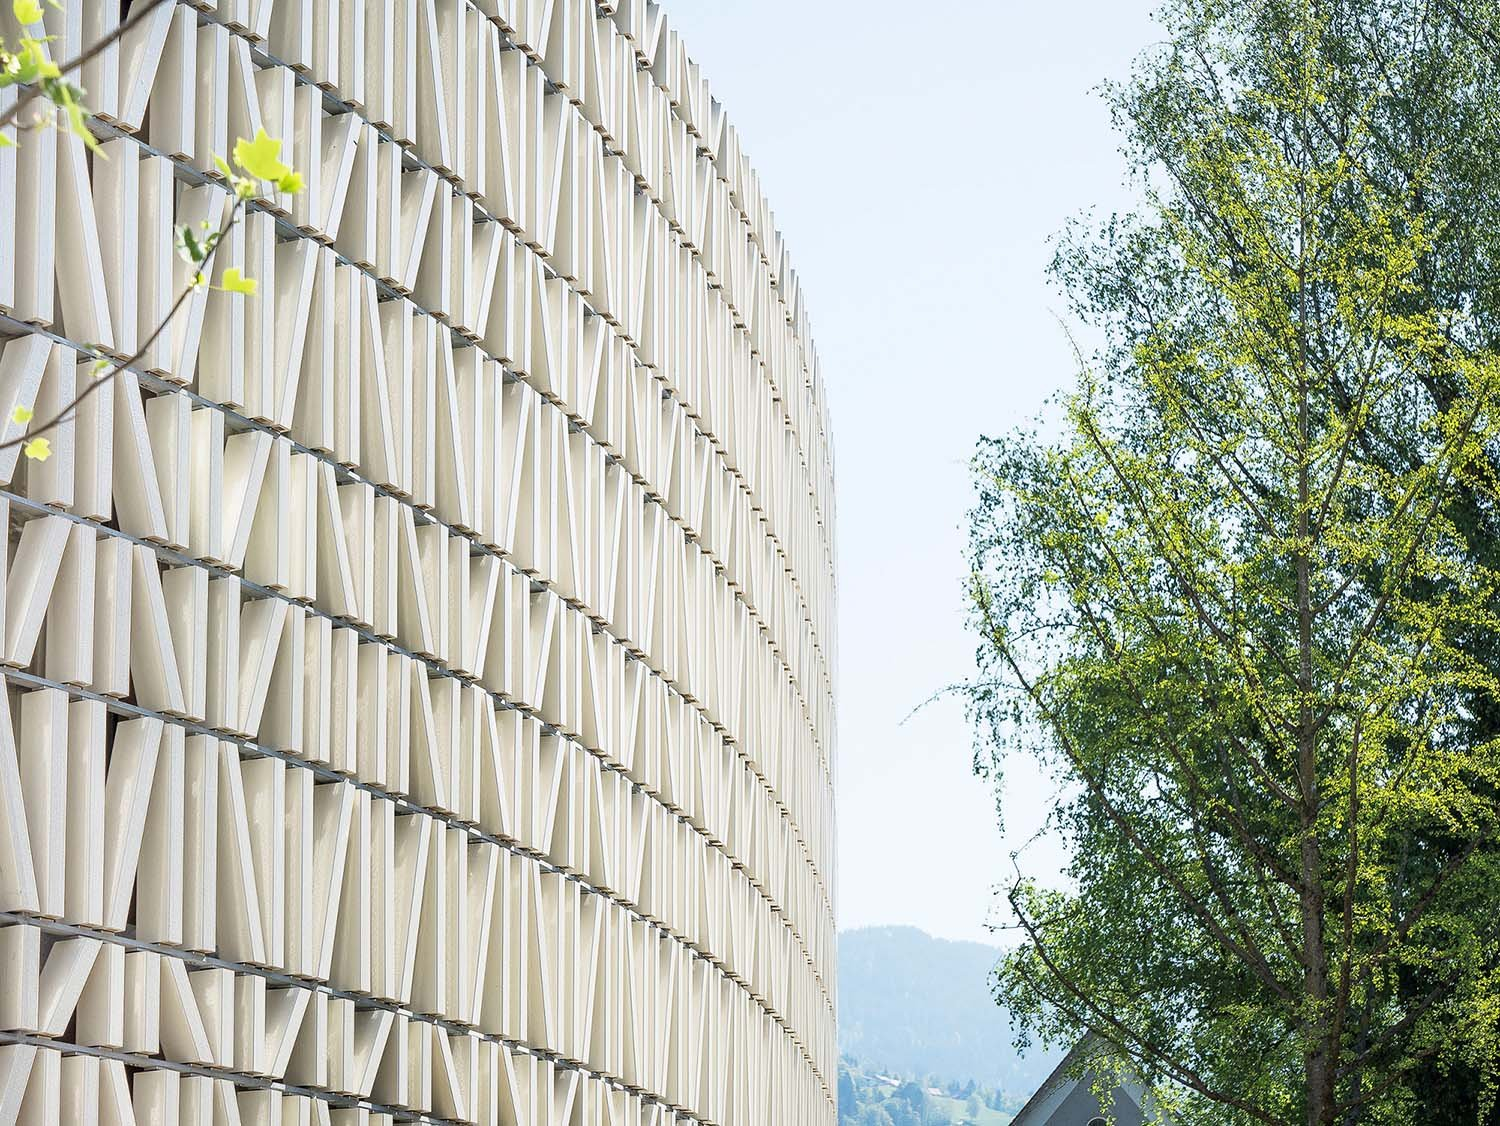 A lattice of ceramic elements is mounted on a steel frame with distance to the glazed facade. Albrecht I. Schnabel